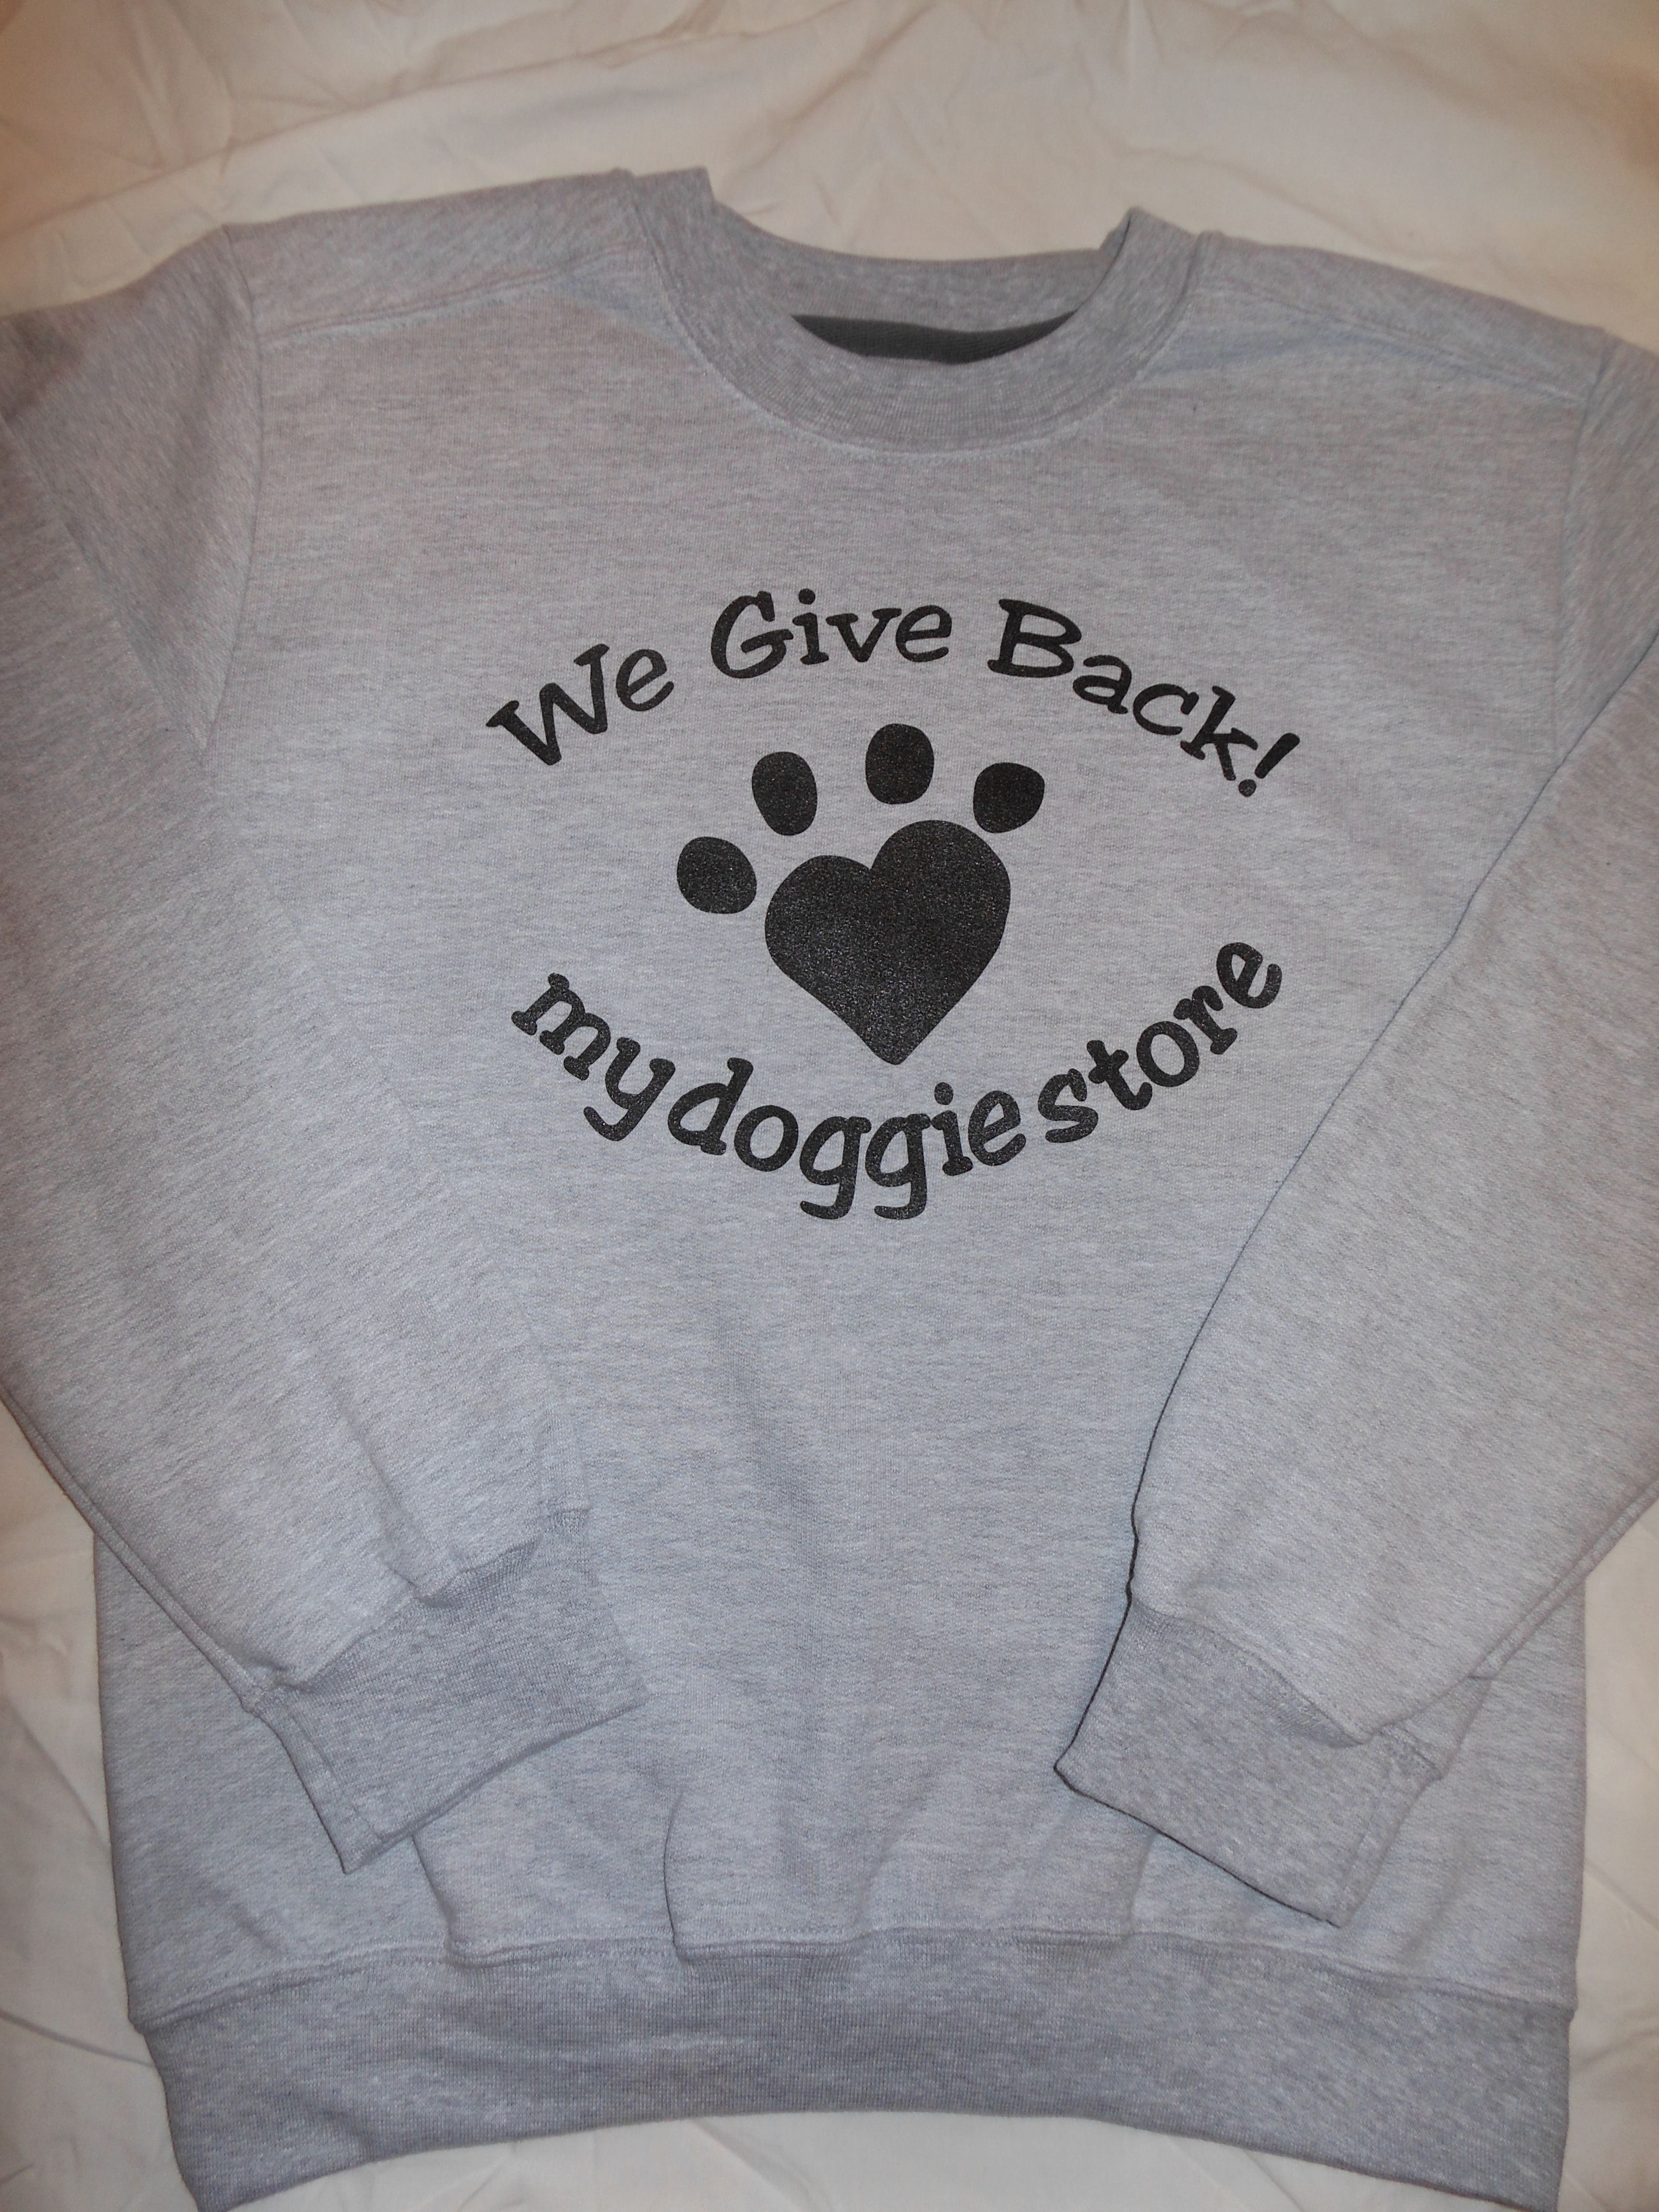 Show your love for dogs with our mydoggiestore crewneck sweatshirts sporting our cute heart-shaped paw logo! 10% of our nets sales are donated back!